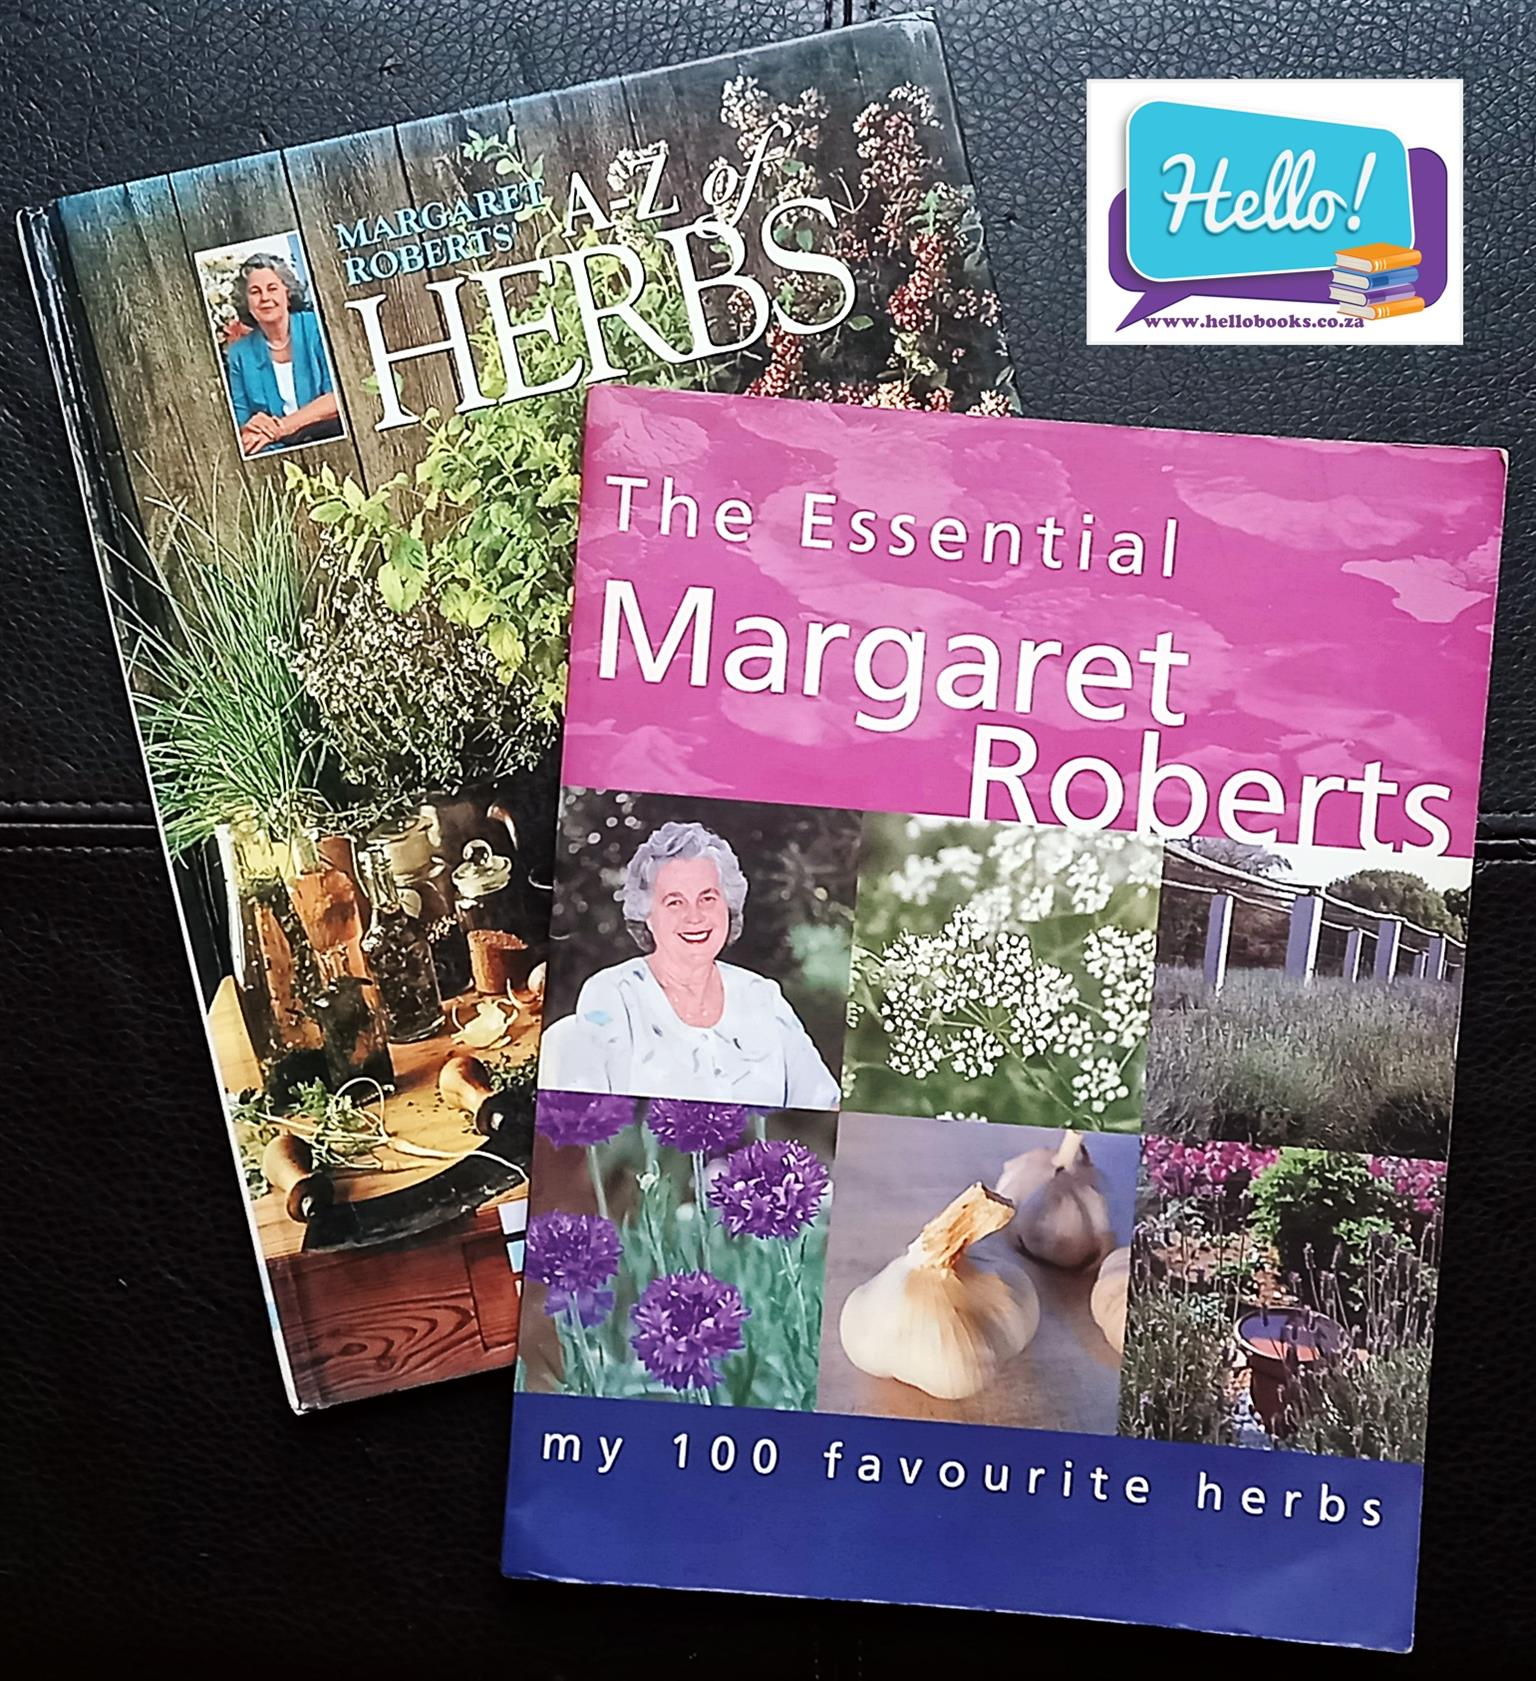 Books by Margaret Roberts